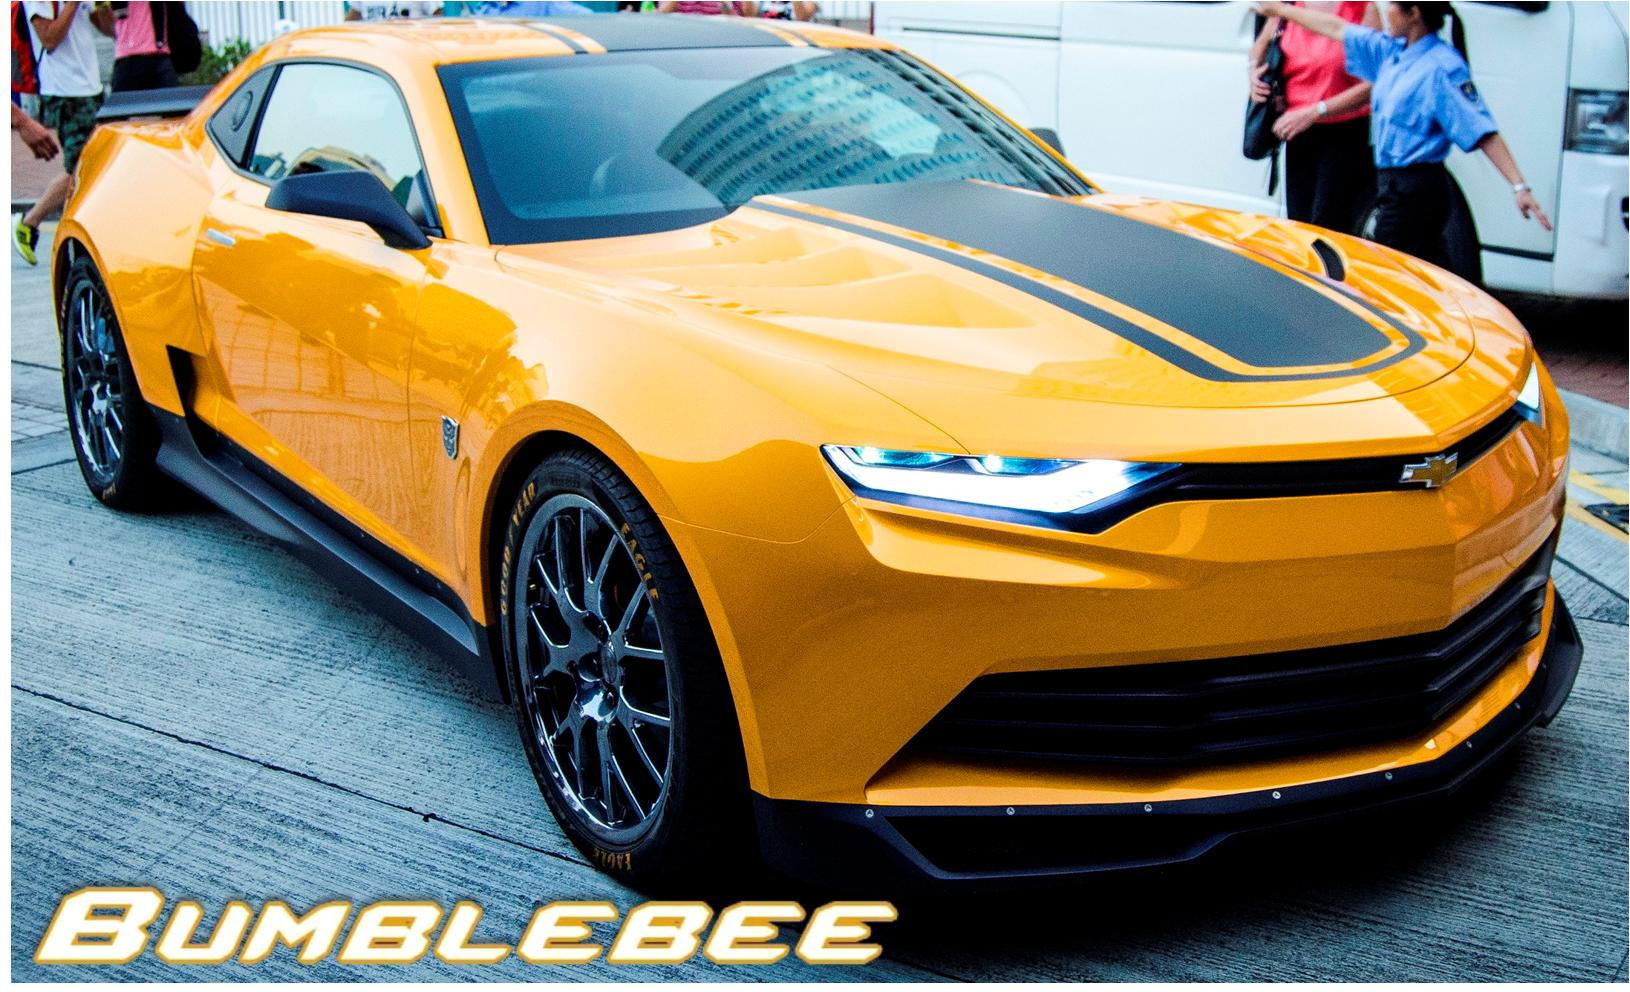 2014 Chevrolet Transformers 4 Bumblebee Camaro Top Speed